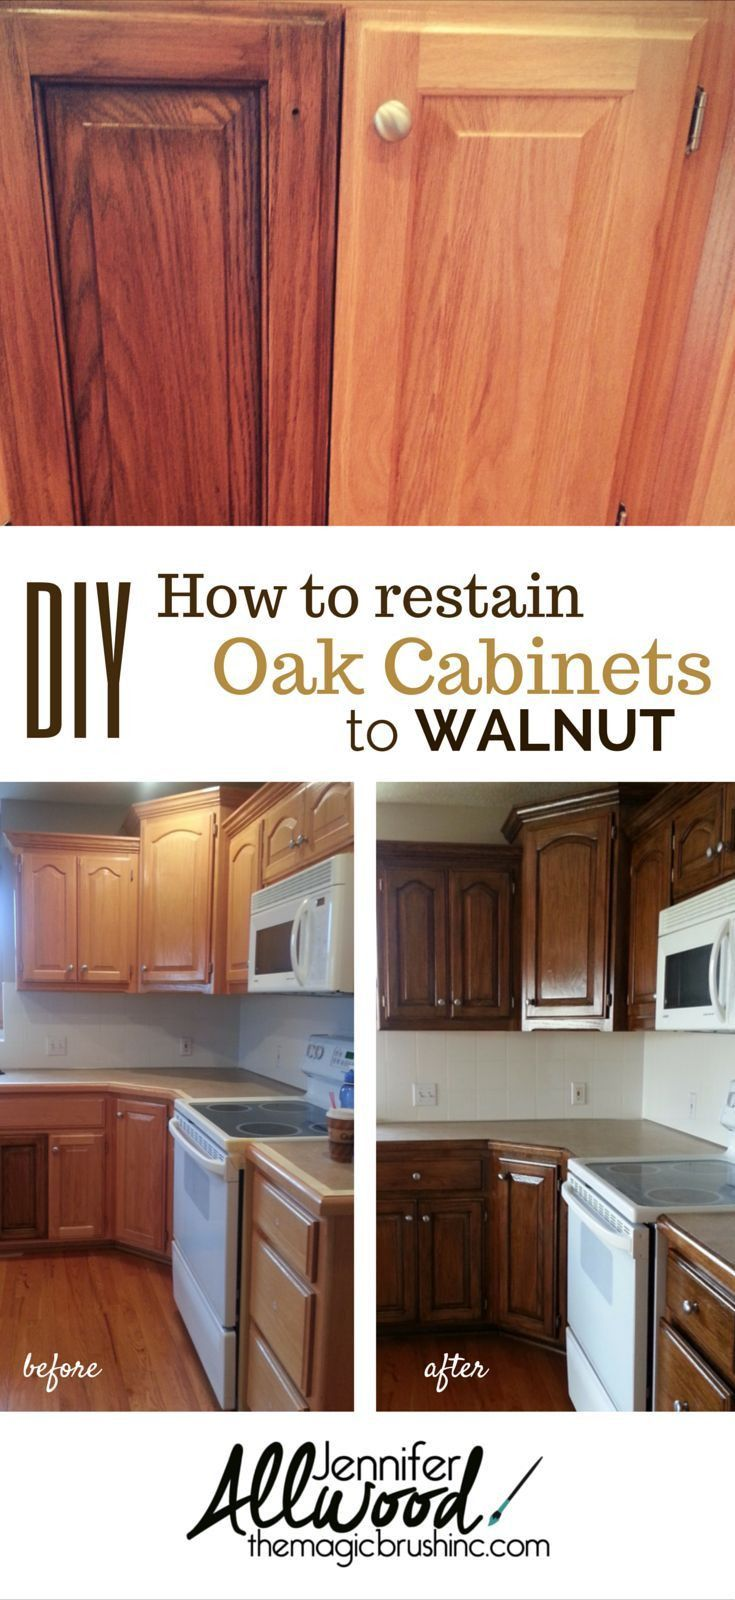 pin by rahayu12 on interior analogi in 2018 pinterest kitchen rh pinterest com best wood to stain for kitchen cabinets best wood to stain for kitchen cabinets